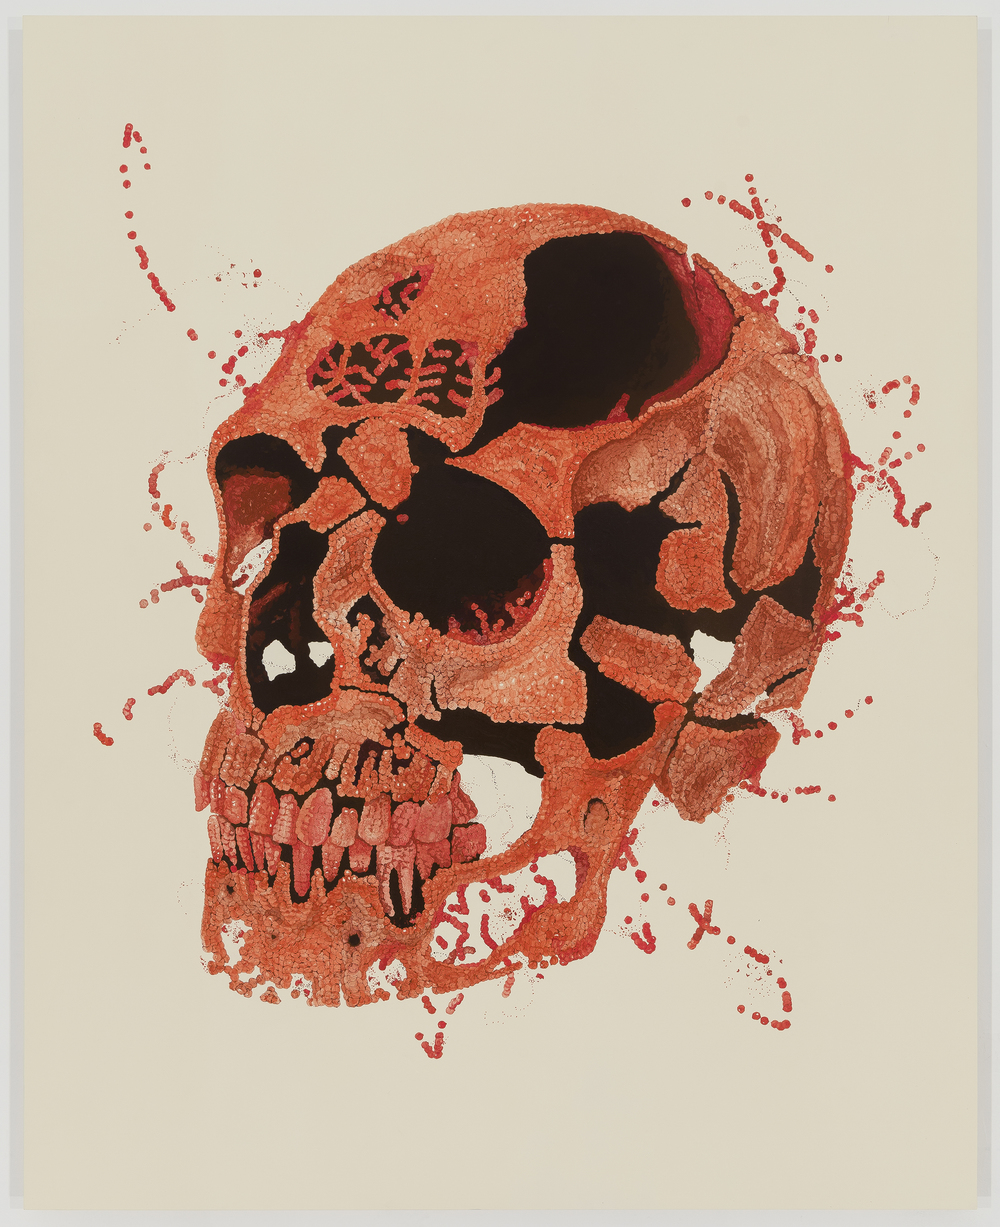 IMPERMANENT (THE POMEGRANATE SKULL)  2014 INK AND ACRYLIC ON PANEL 60 X 48 INCHES